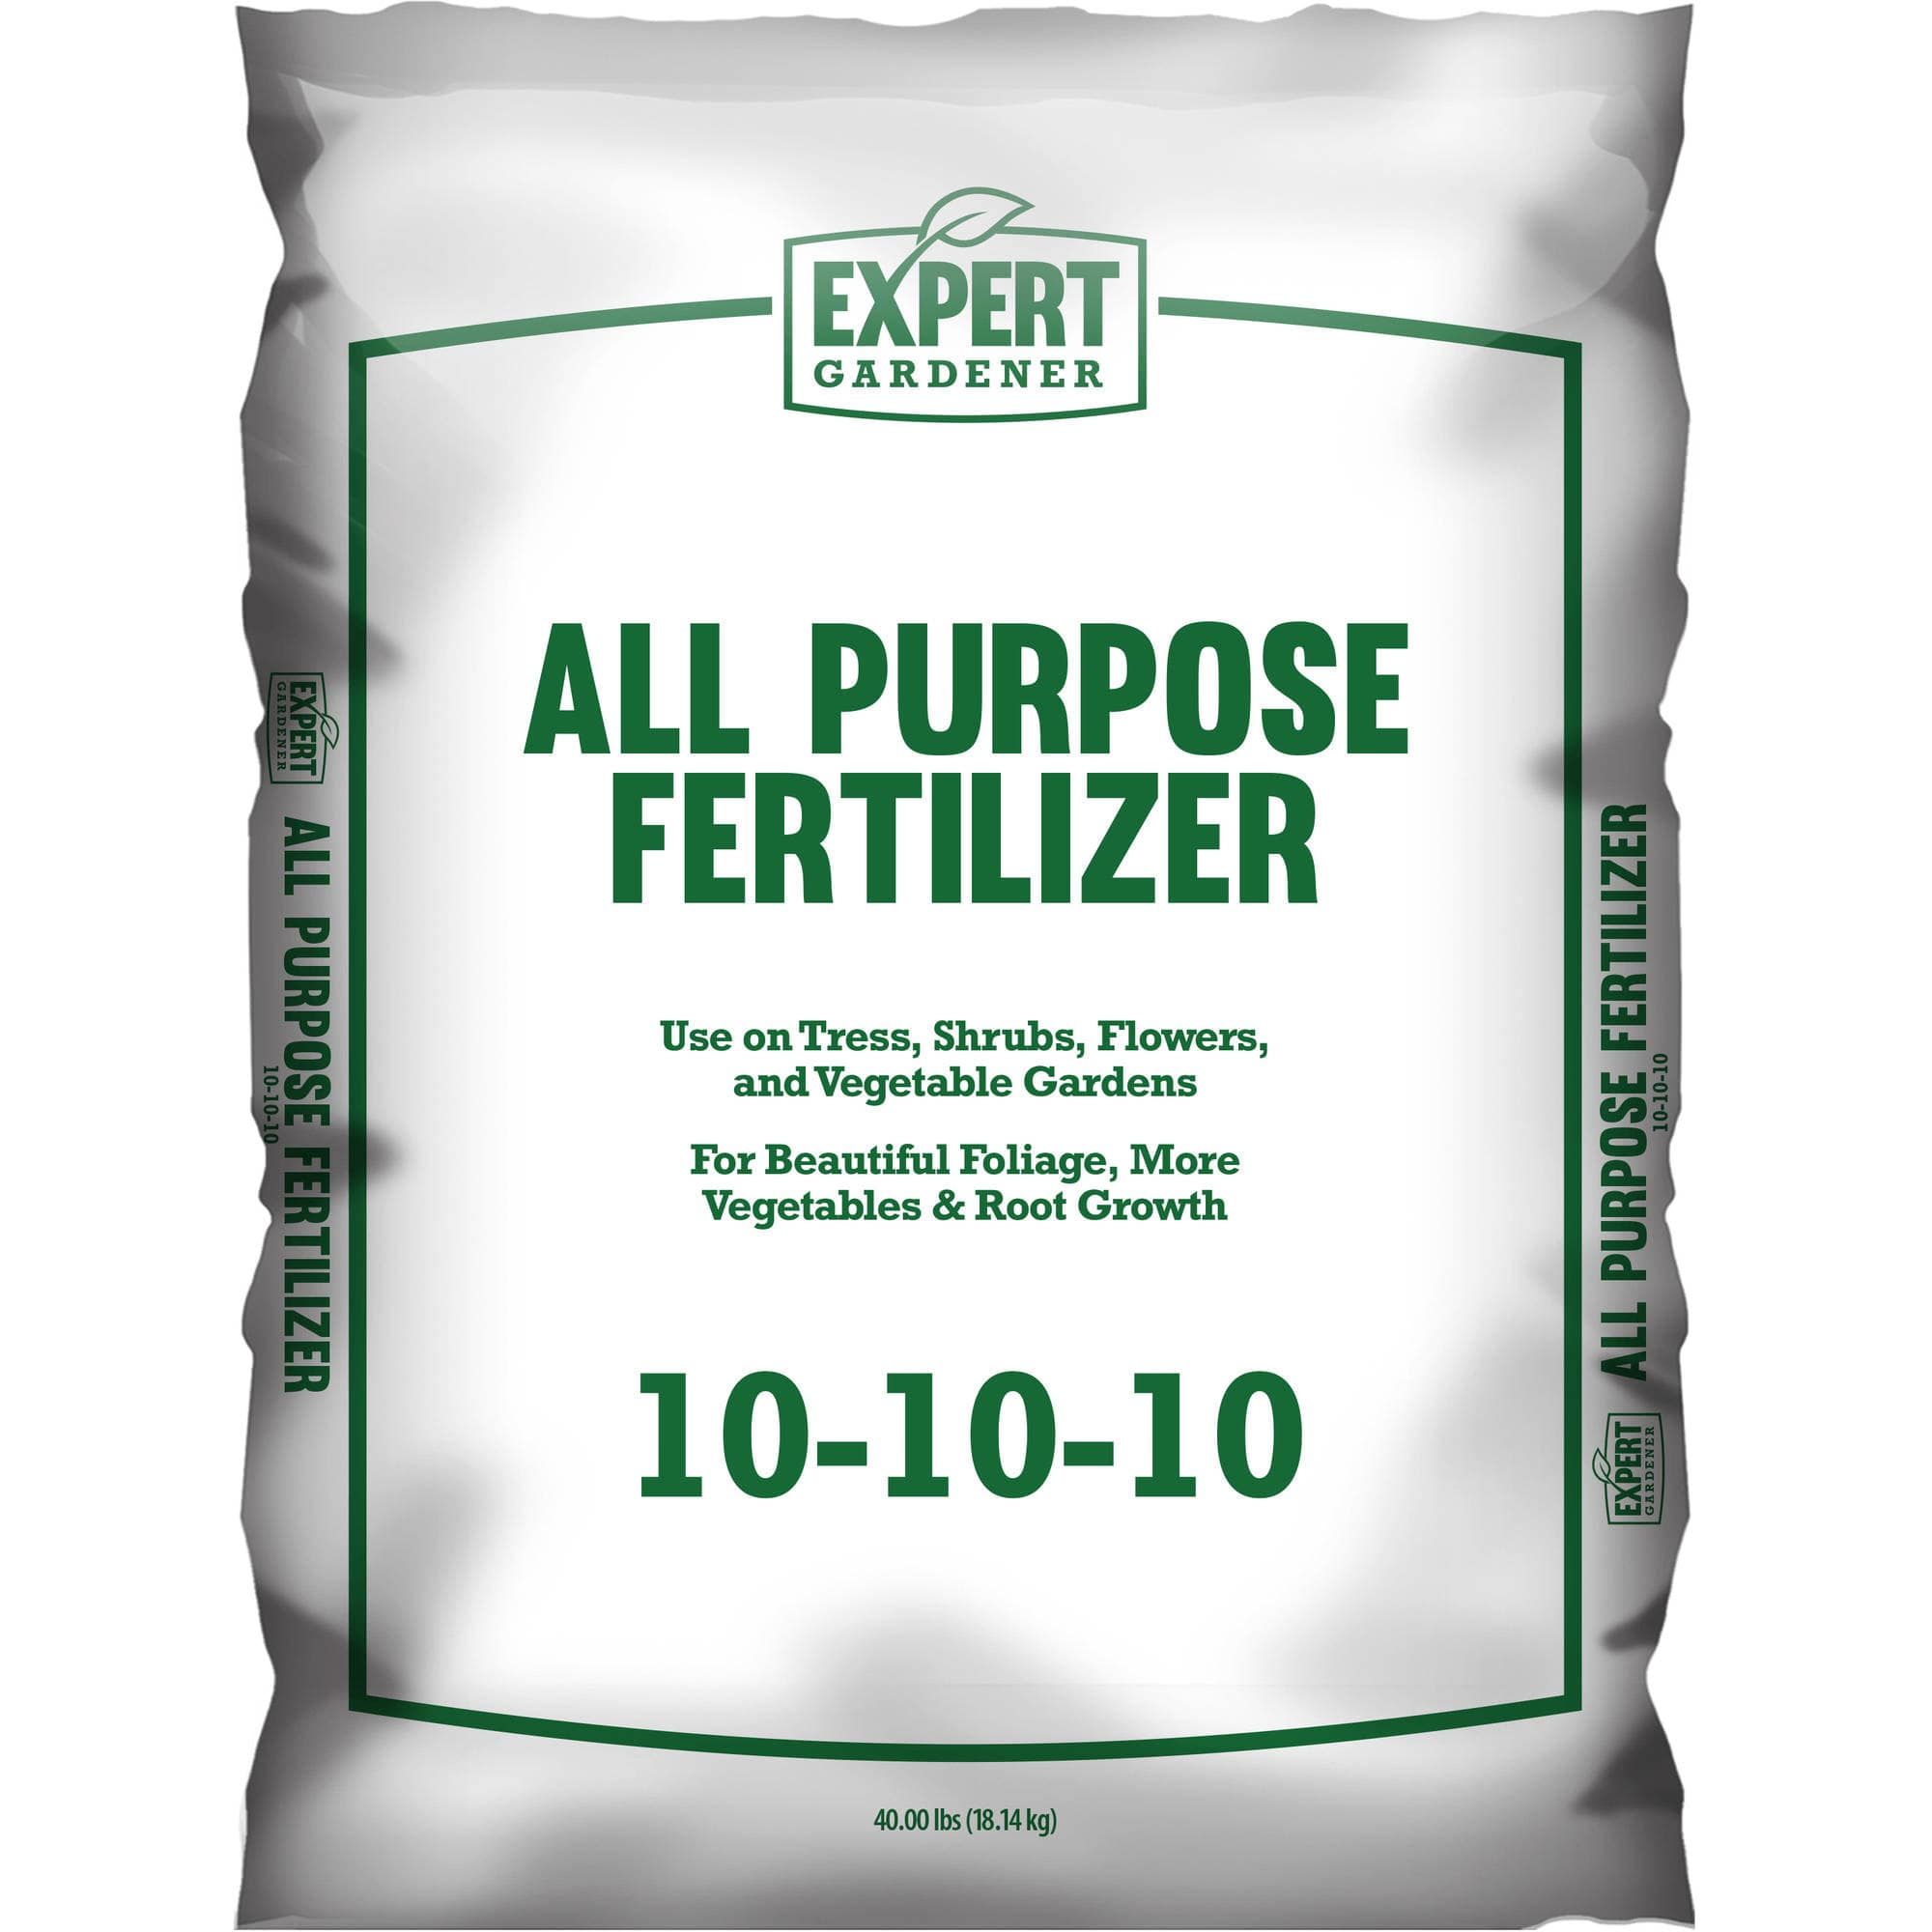 Expert Gardener All Purpose Fertilizer 40 Lb. $2 @Walmart YMMV